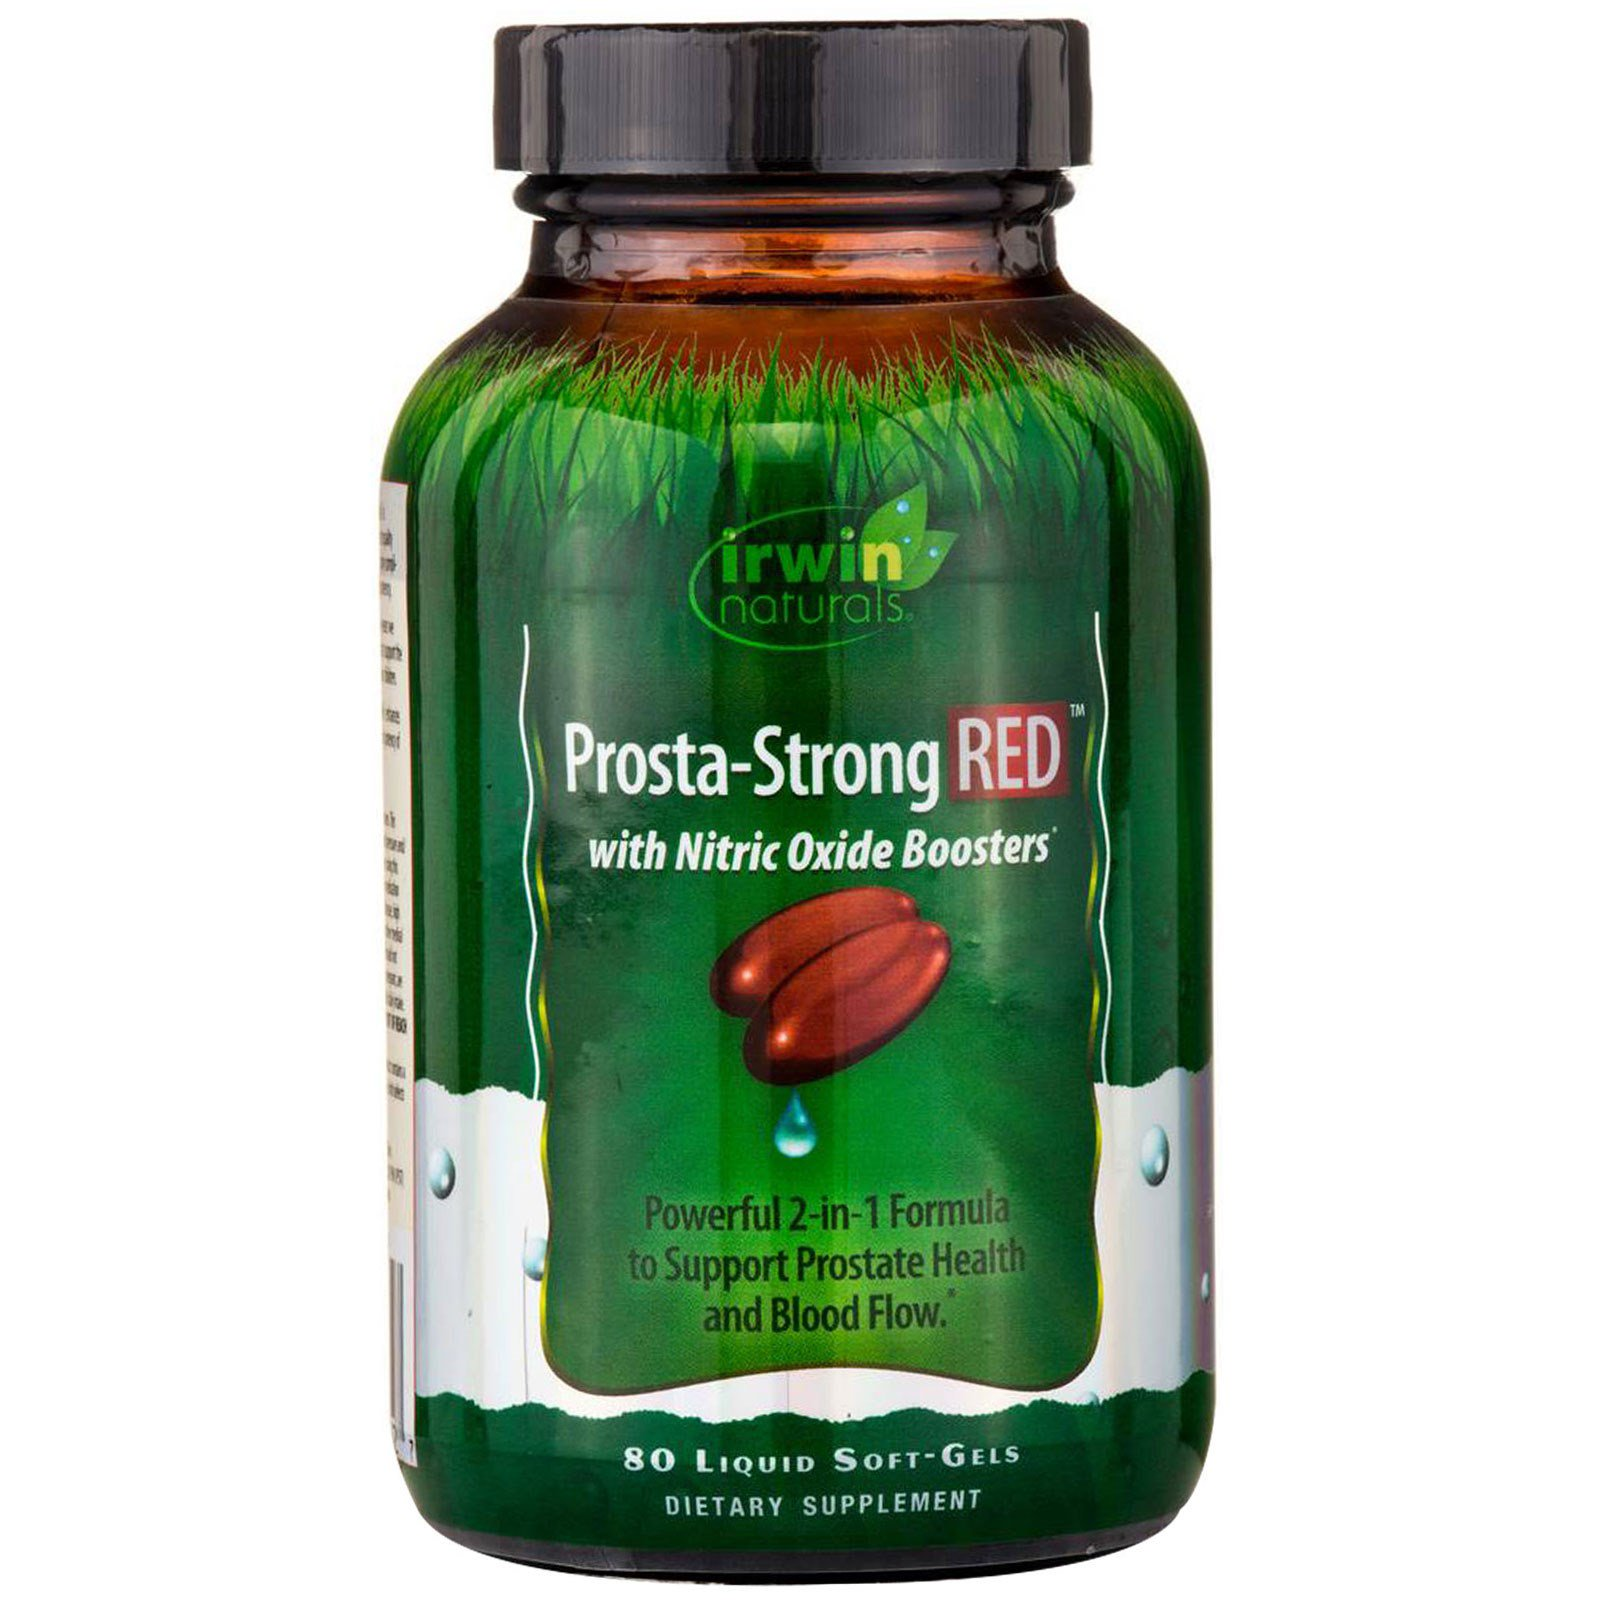 Irwin Naturals Prosta Strong Red Reviews